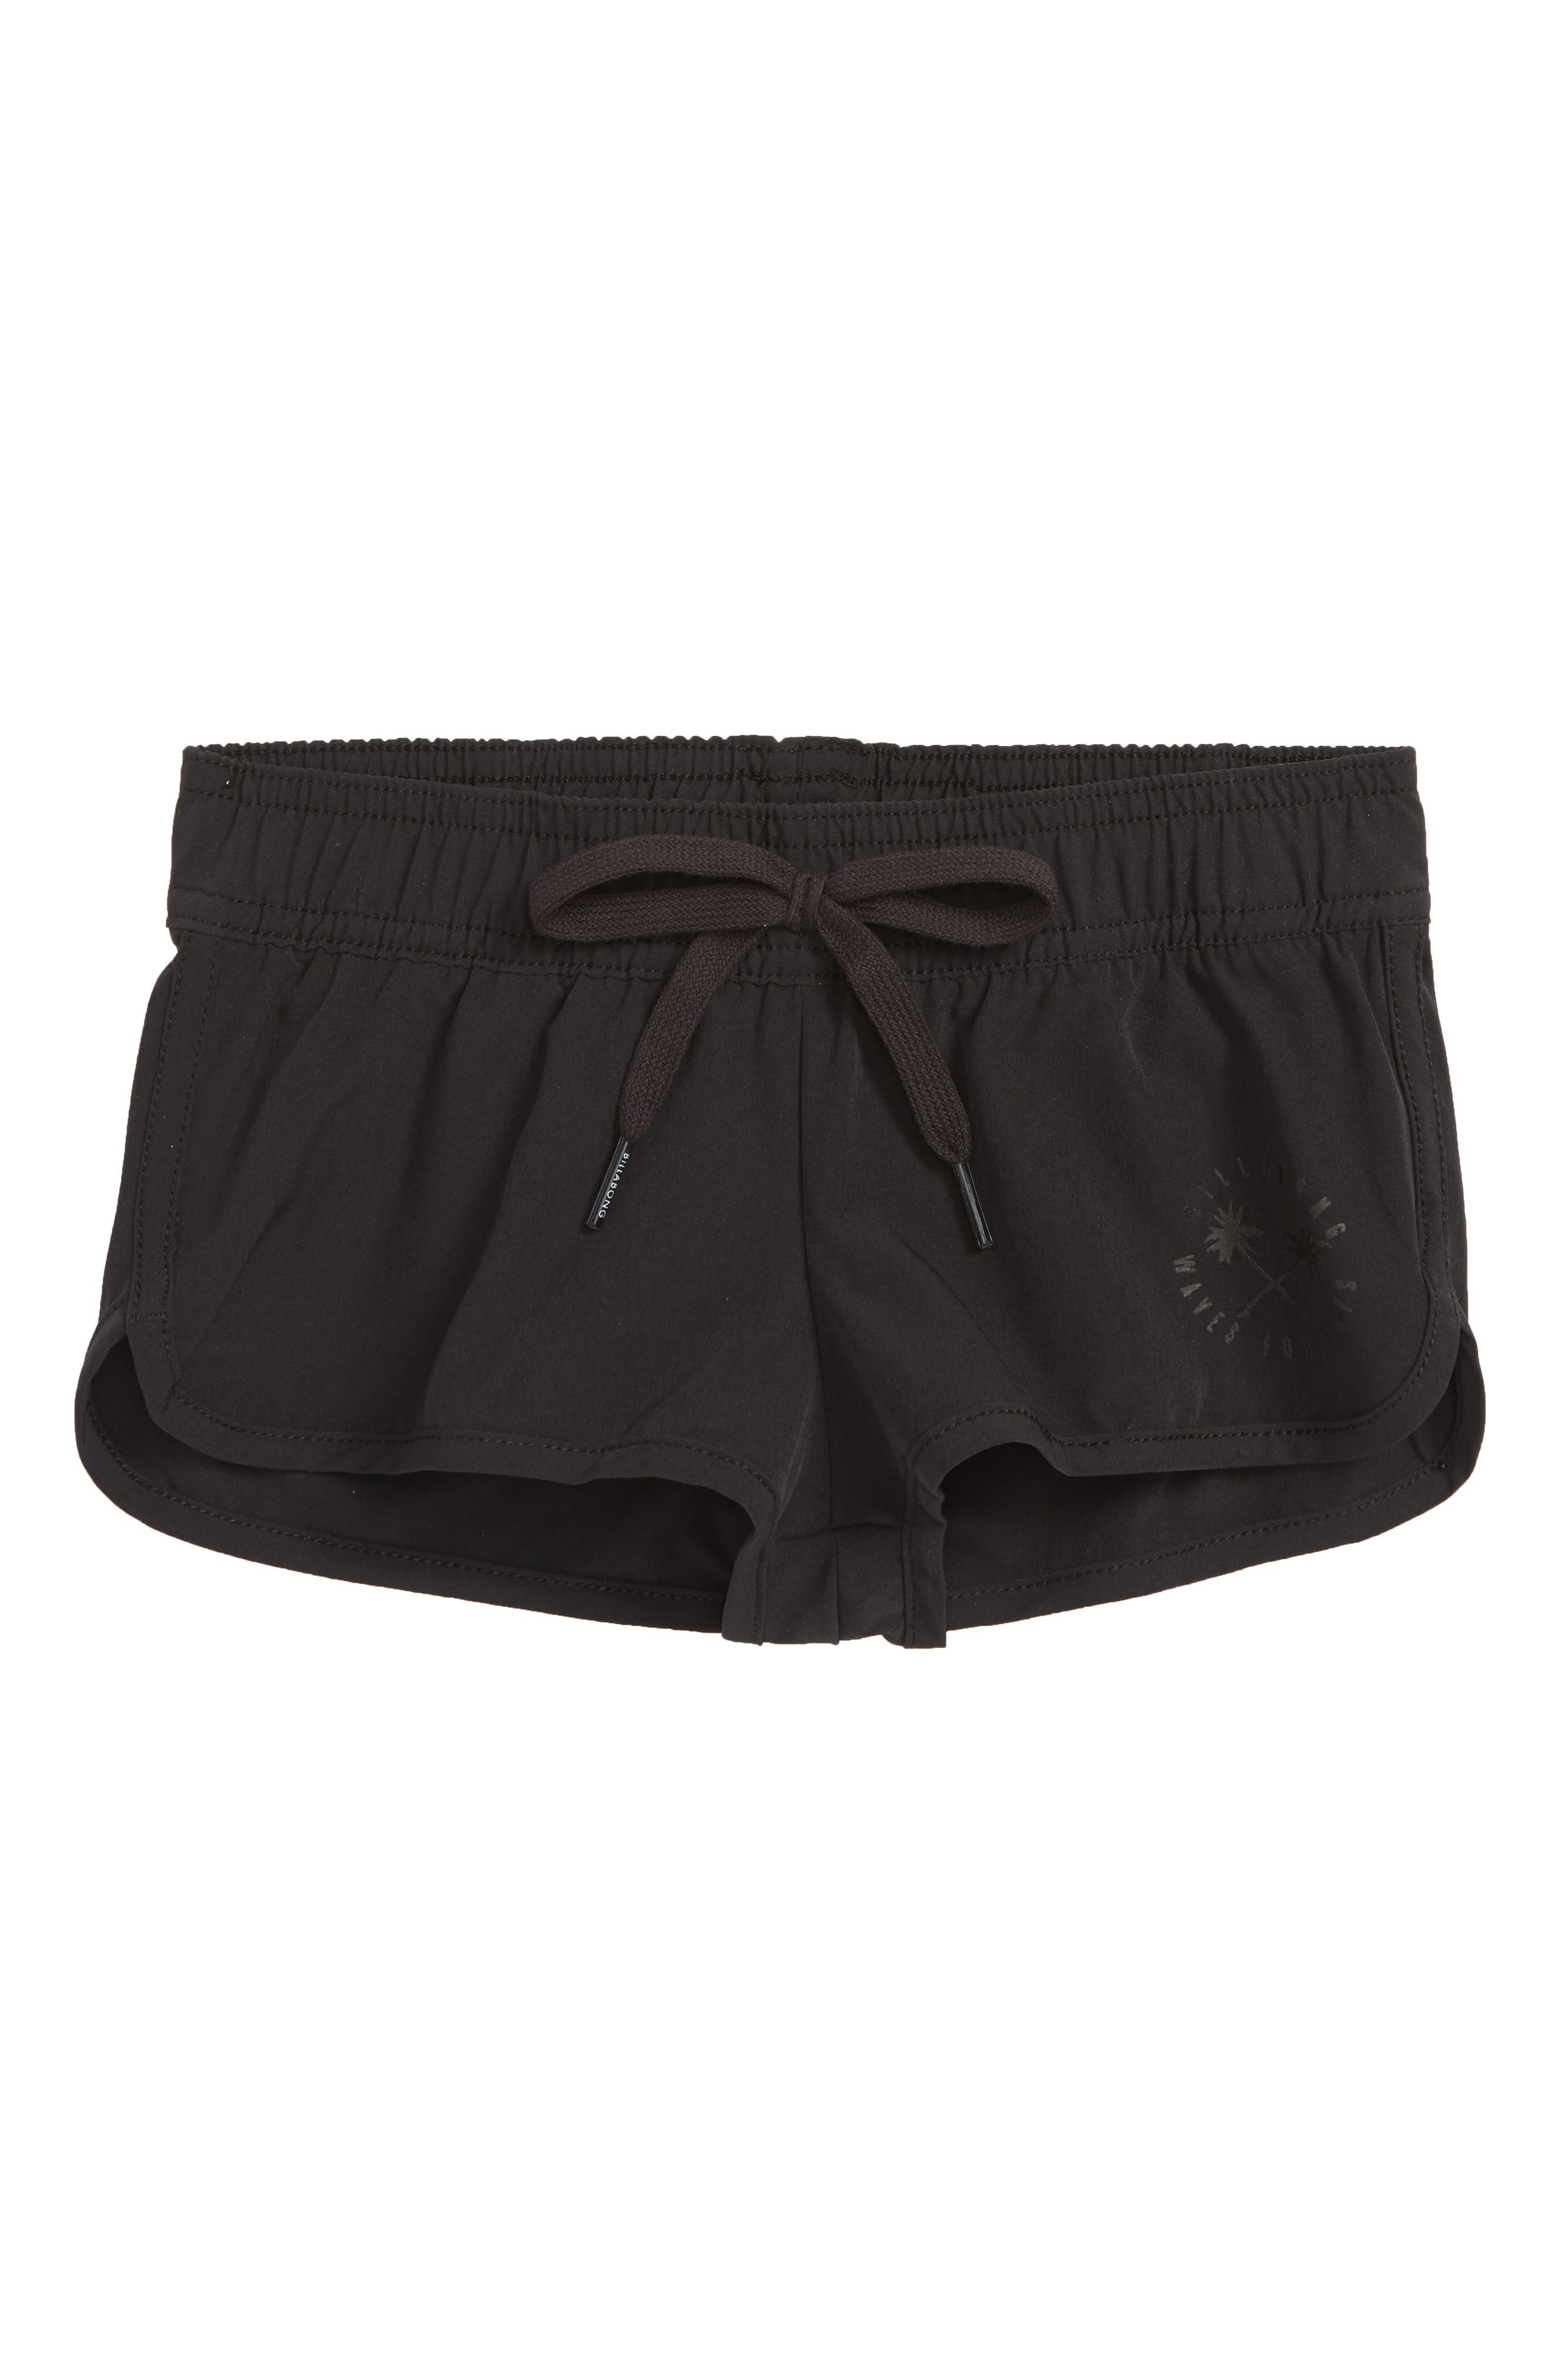 Waves for Days Volley Shorts,                         Main,                         color, 012